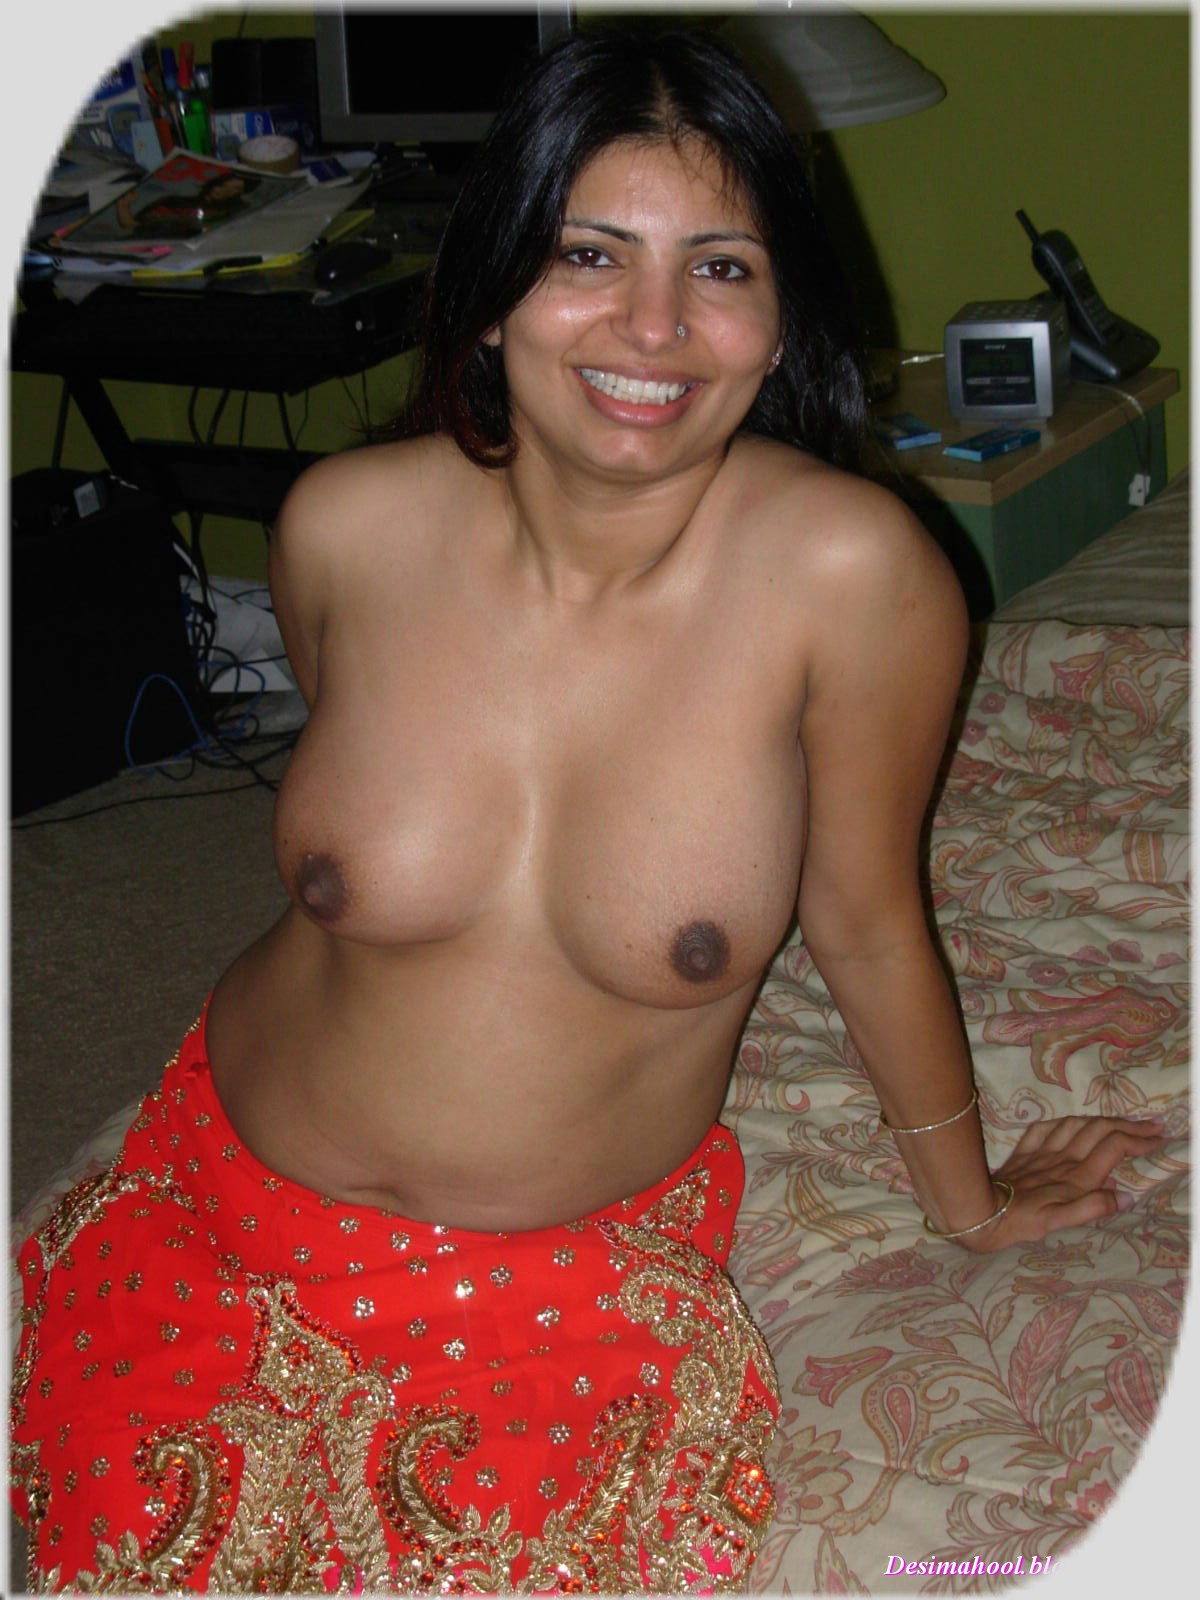 First night experience nude